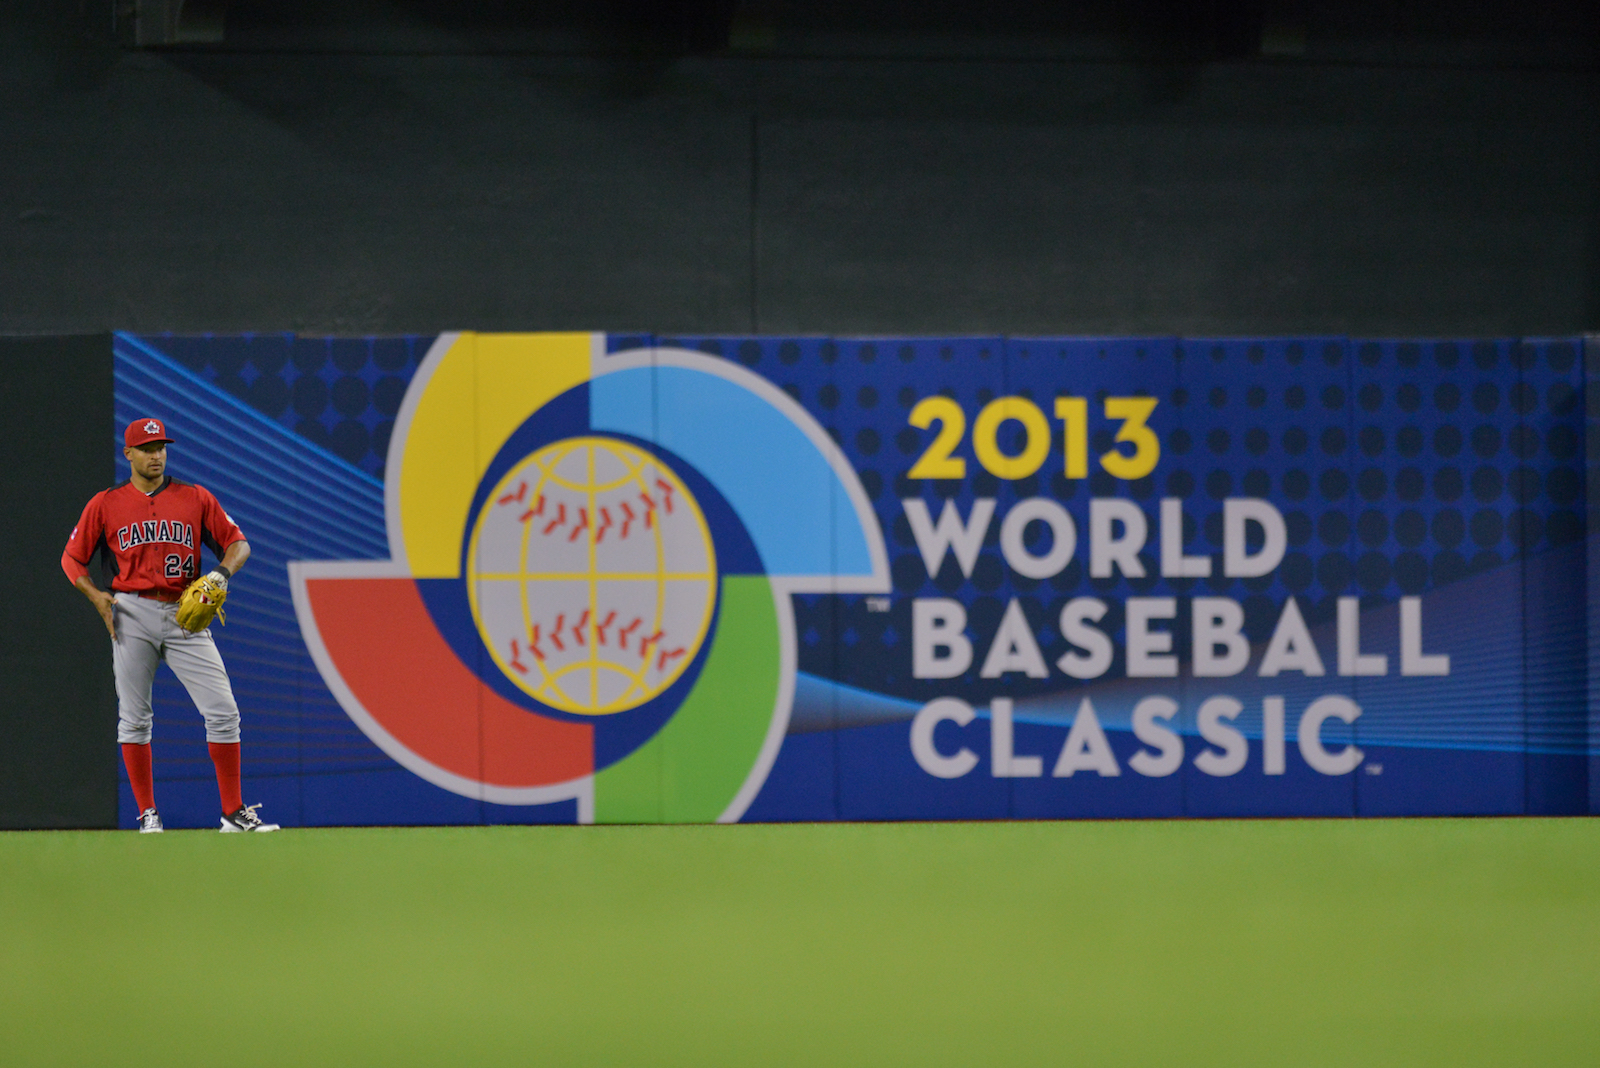 Sportsnet has the World Baseball Classic covered!